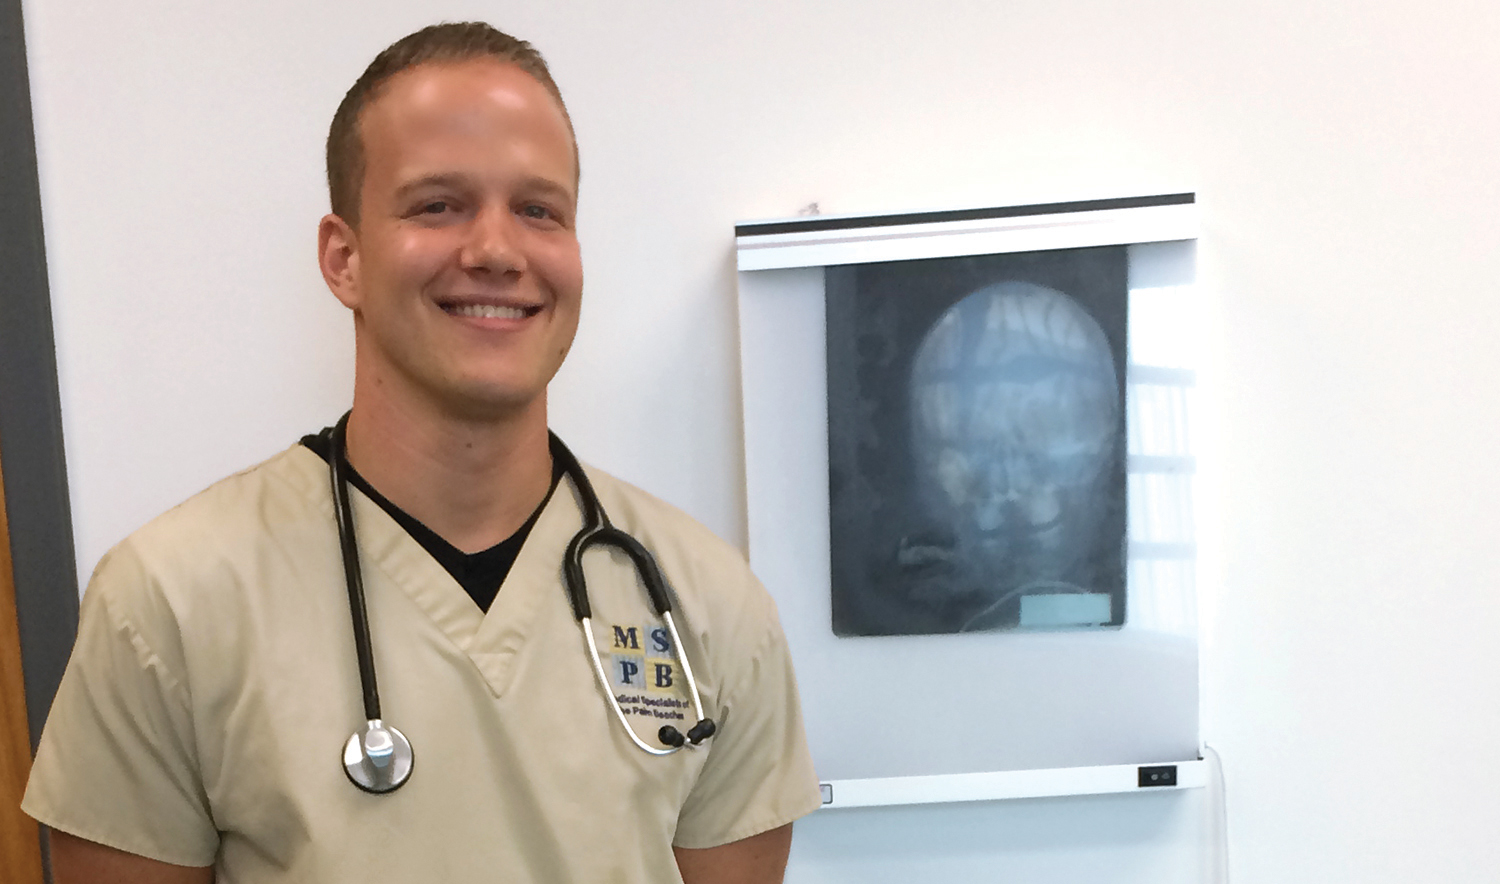 """With him being a doctor, he taught us more than we actually even needed to know, which has really helped me in my work setting. They see that I have knowledge beyond what I should have, and they value me more as an employee."" Curtis Ober, PBSC alumnus"